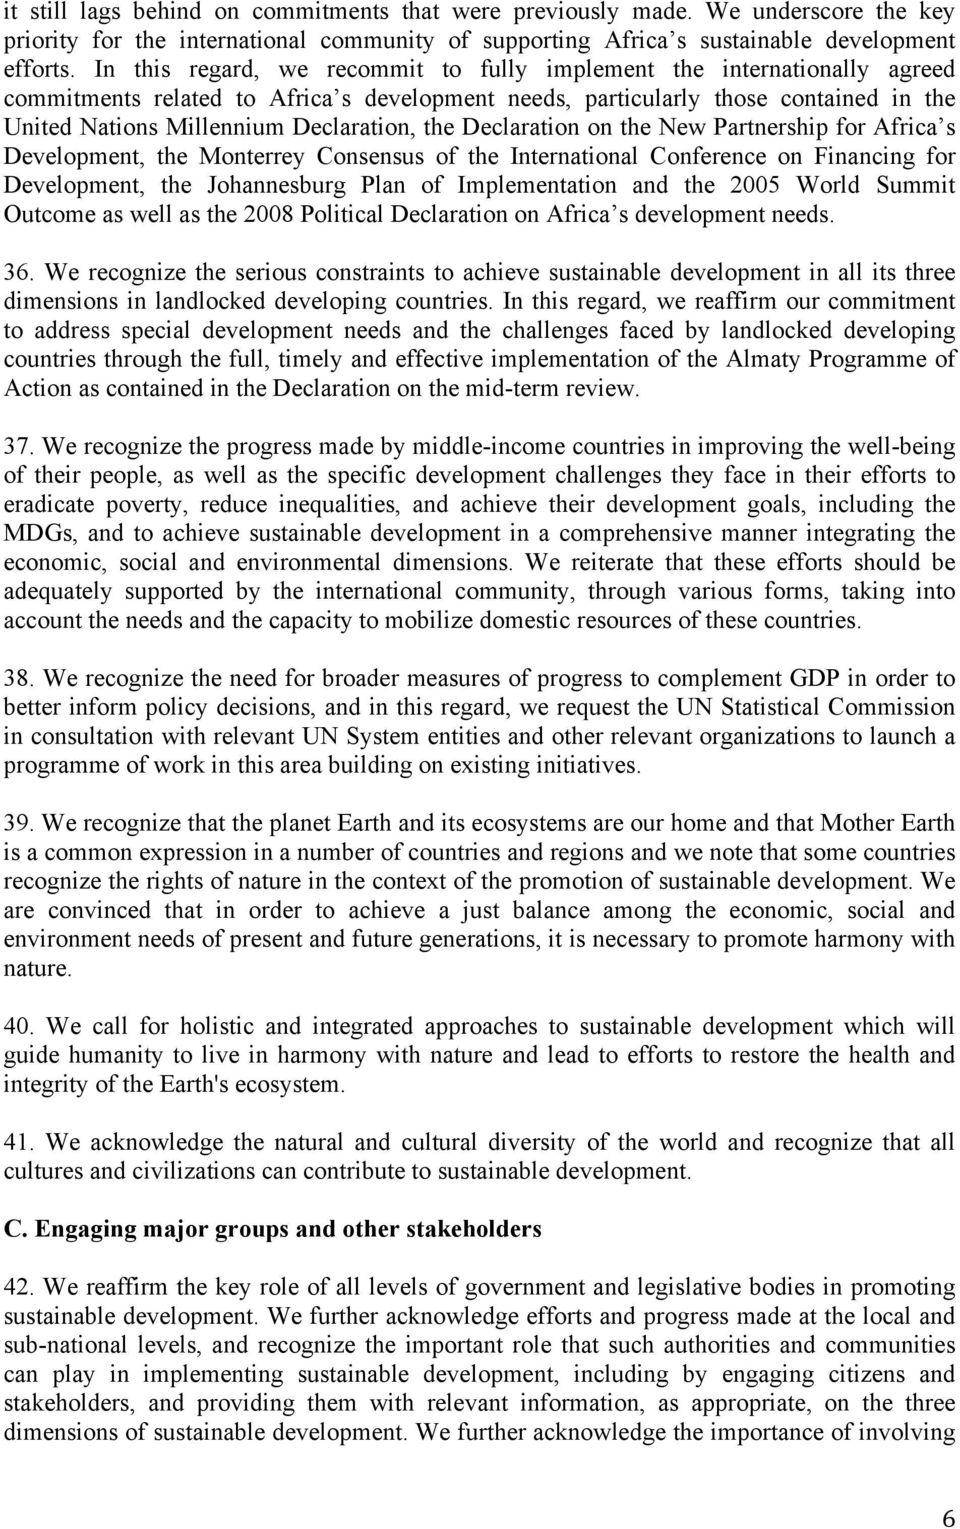 the Declaration on the New Partnership for Africa s Development, the Monterrey Consensus of the International Conference on Financing for Development, the Johannesburg Plan of Implementation and the